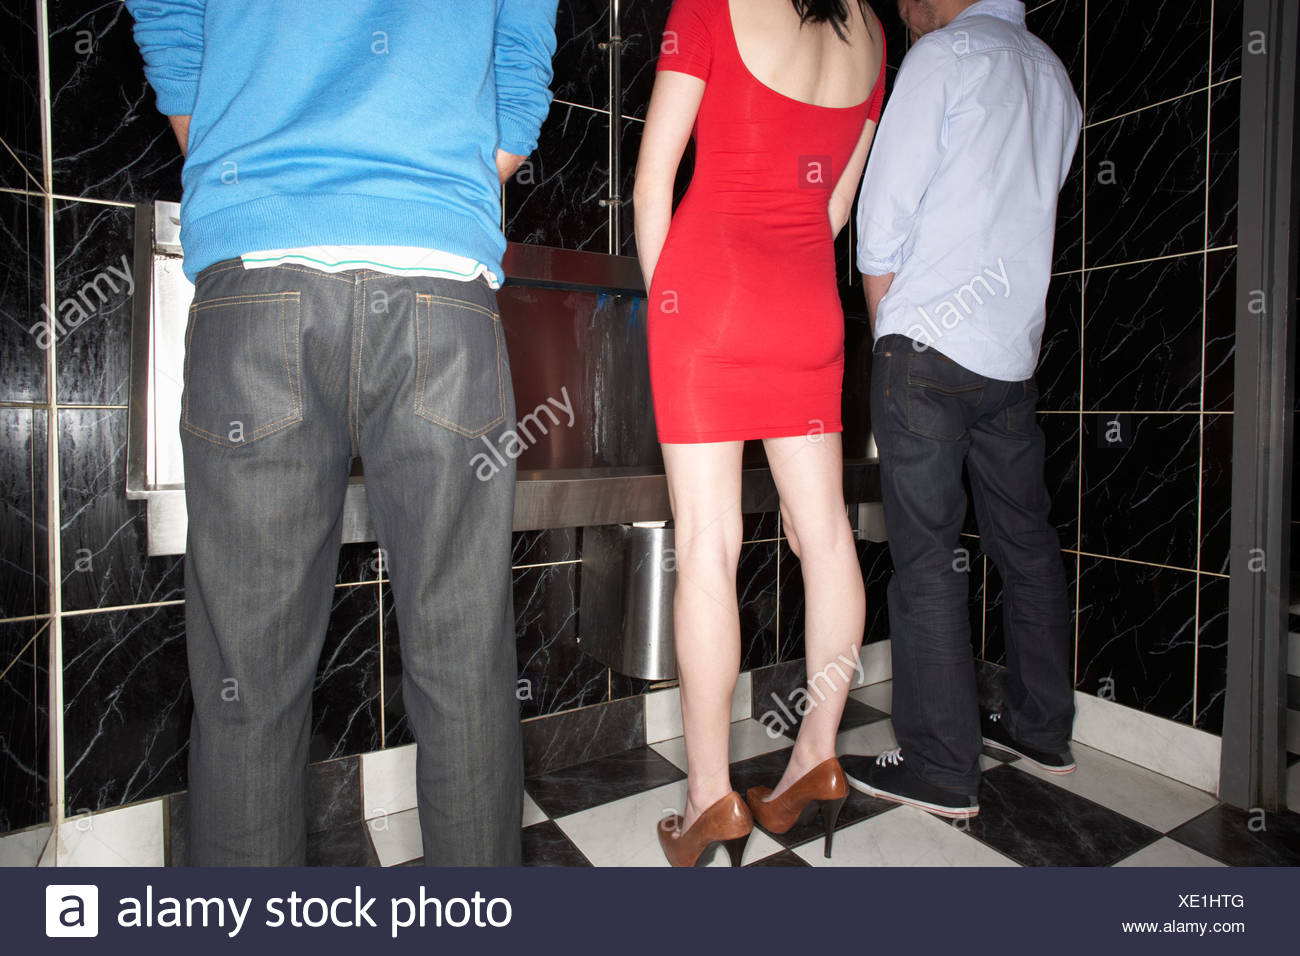 Woman and two men standing at mens urinal - Stock Image